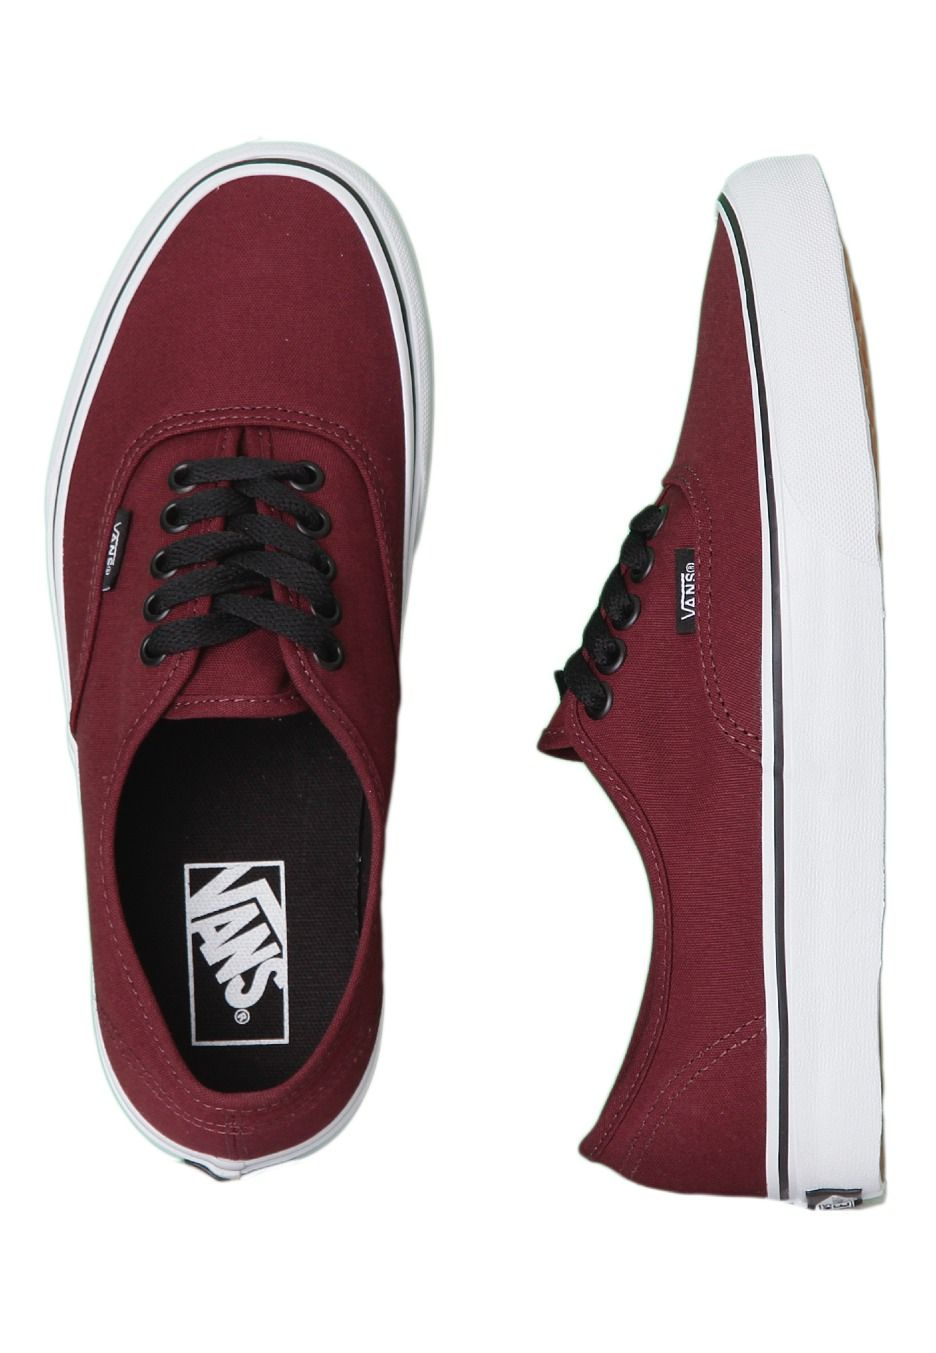 lechuga Dureza Yo  Vans - Authentic Port Royale/Black - Damesschoenen - Official Merchandise Online  Shop - Impericon Nederl… | Sapatos sociais masculinos, Sapatos van, Sapatos  e meias